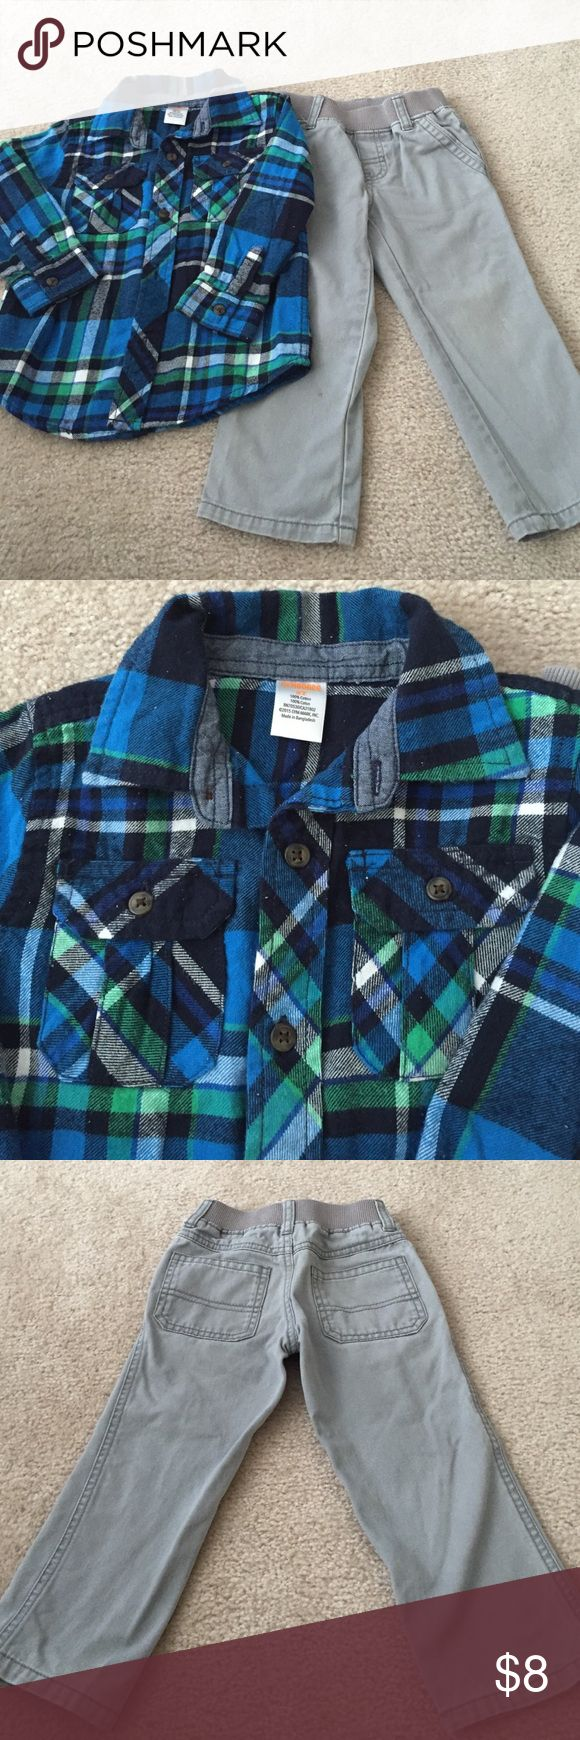 Gymboree pants and flannel shirt outfit Gymboree gray pants and blue plaid shirt outfit Gymboree Matching Sets